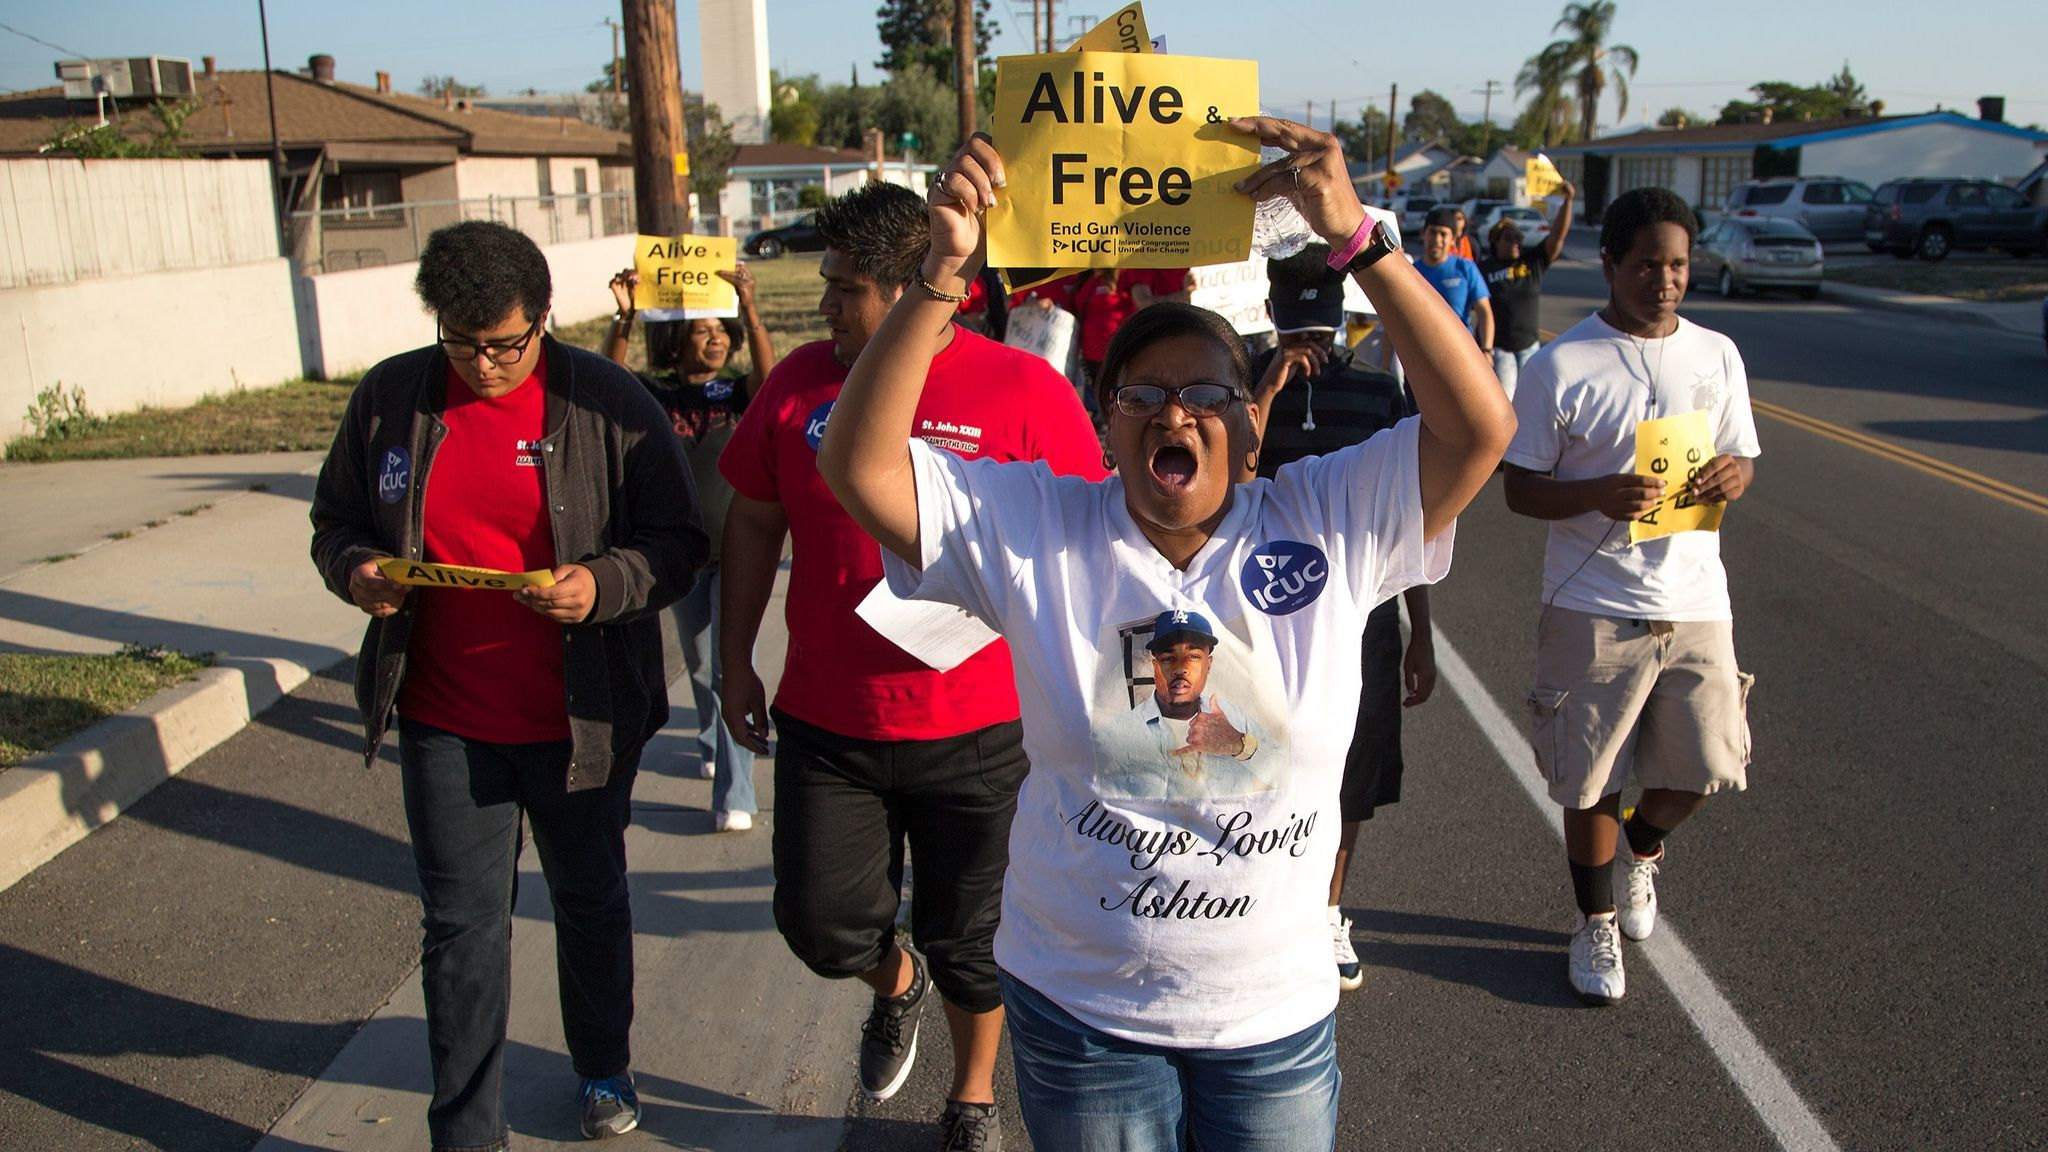 Sandra Hall of San Bernardino marches with about 200 community members in a Peace Walk to honor the victims of homicides and call for an end to gun violence on May 19, 2016, in San Bernardino.